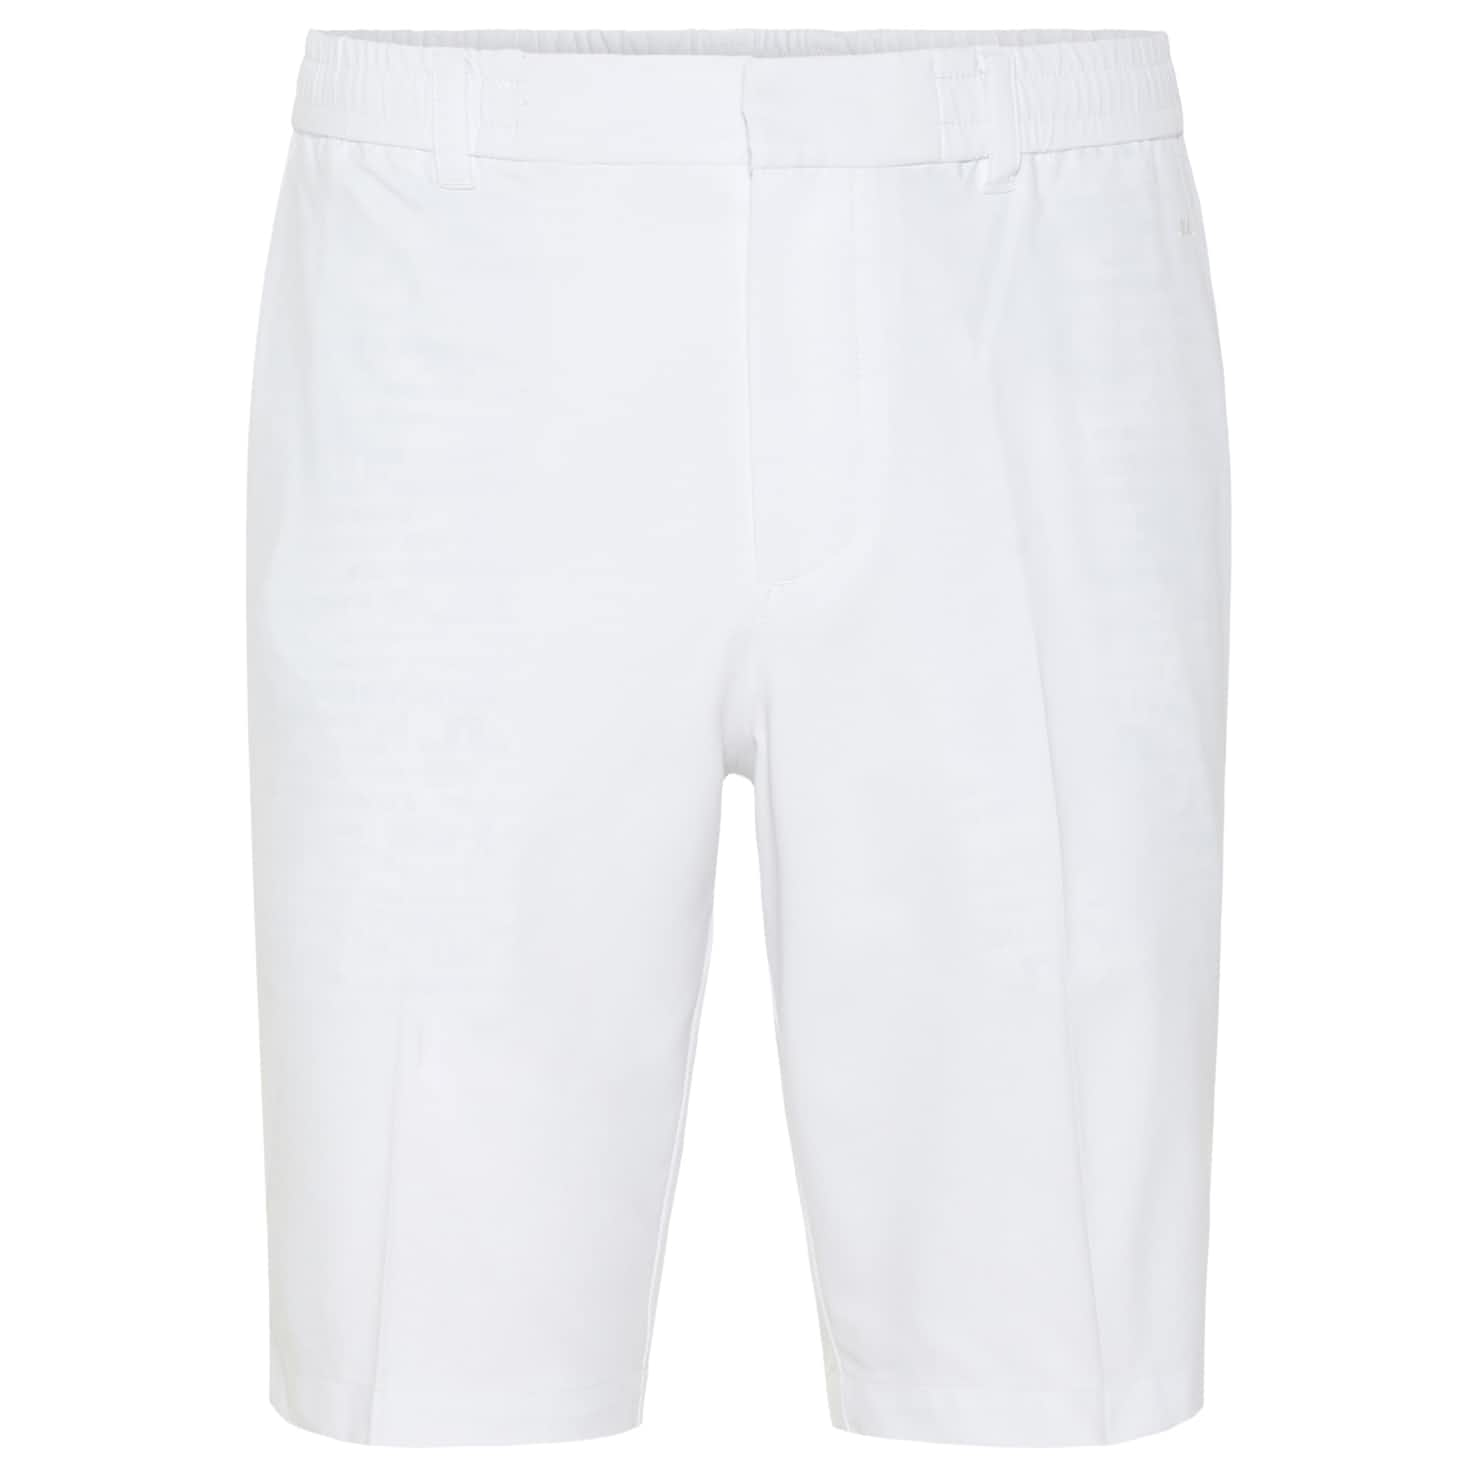 Dex Light Poly Stretch White - SS20